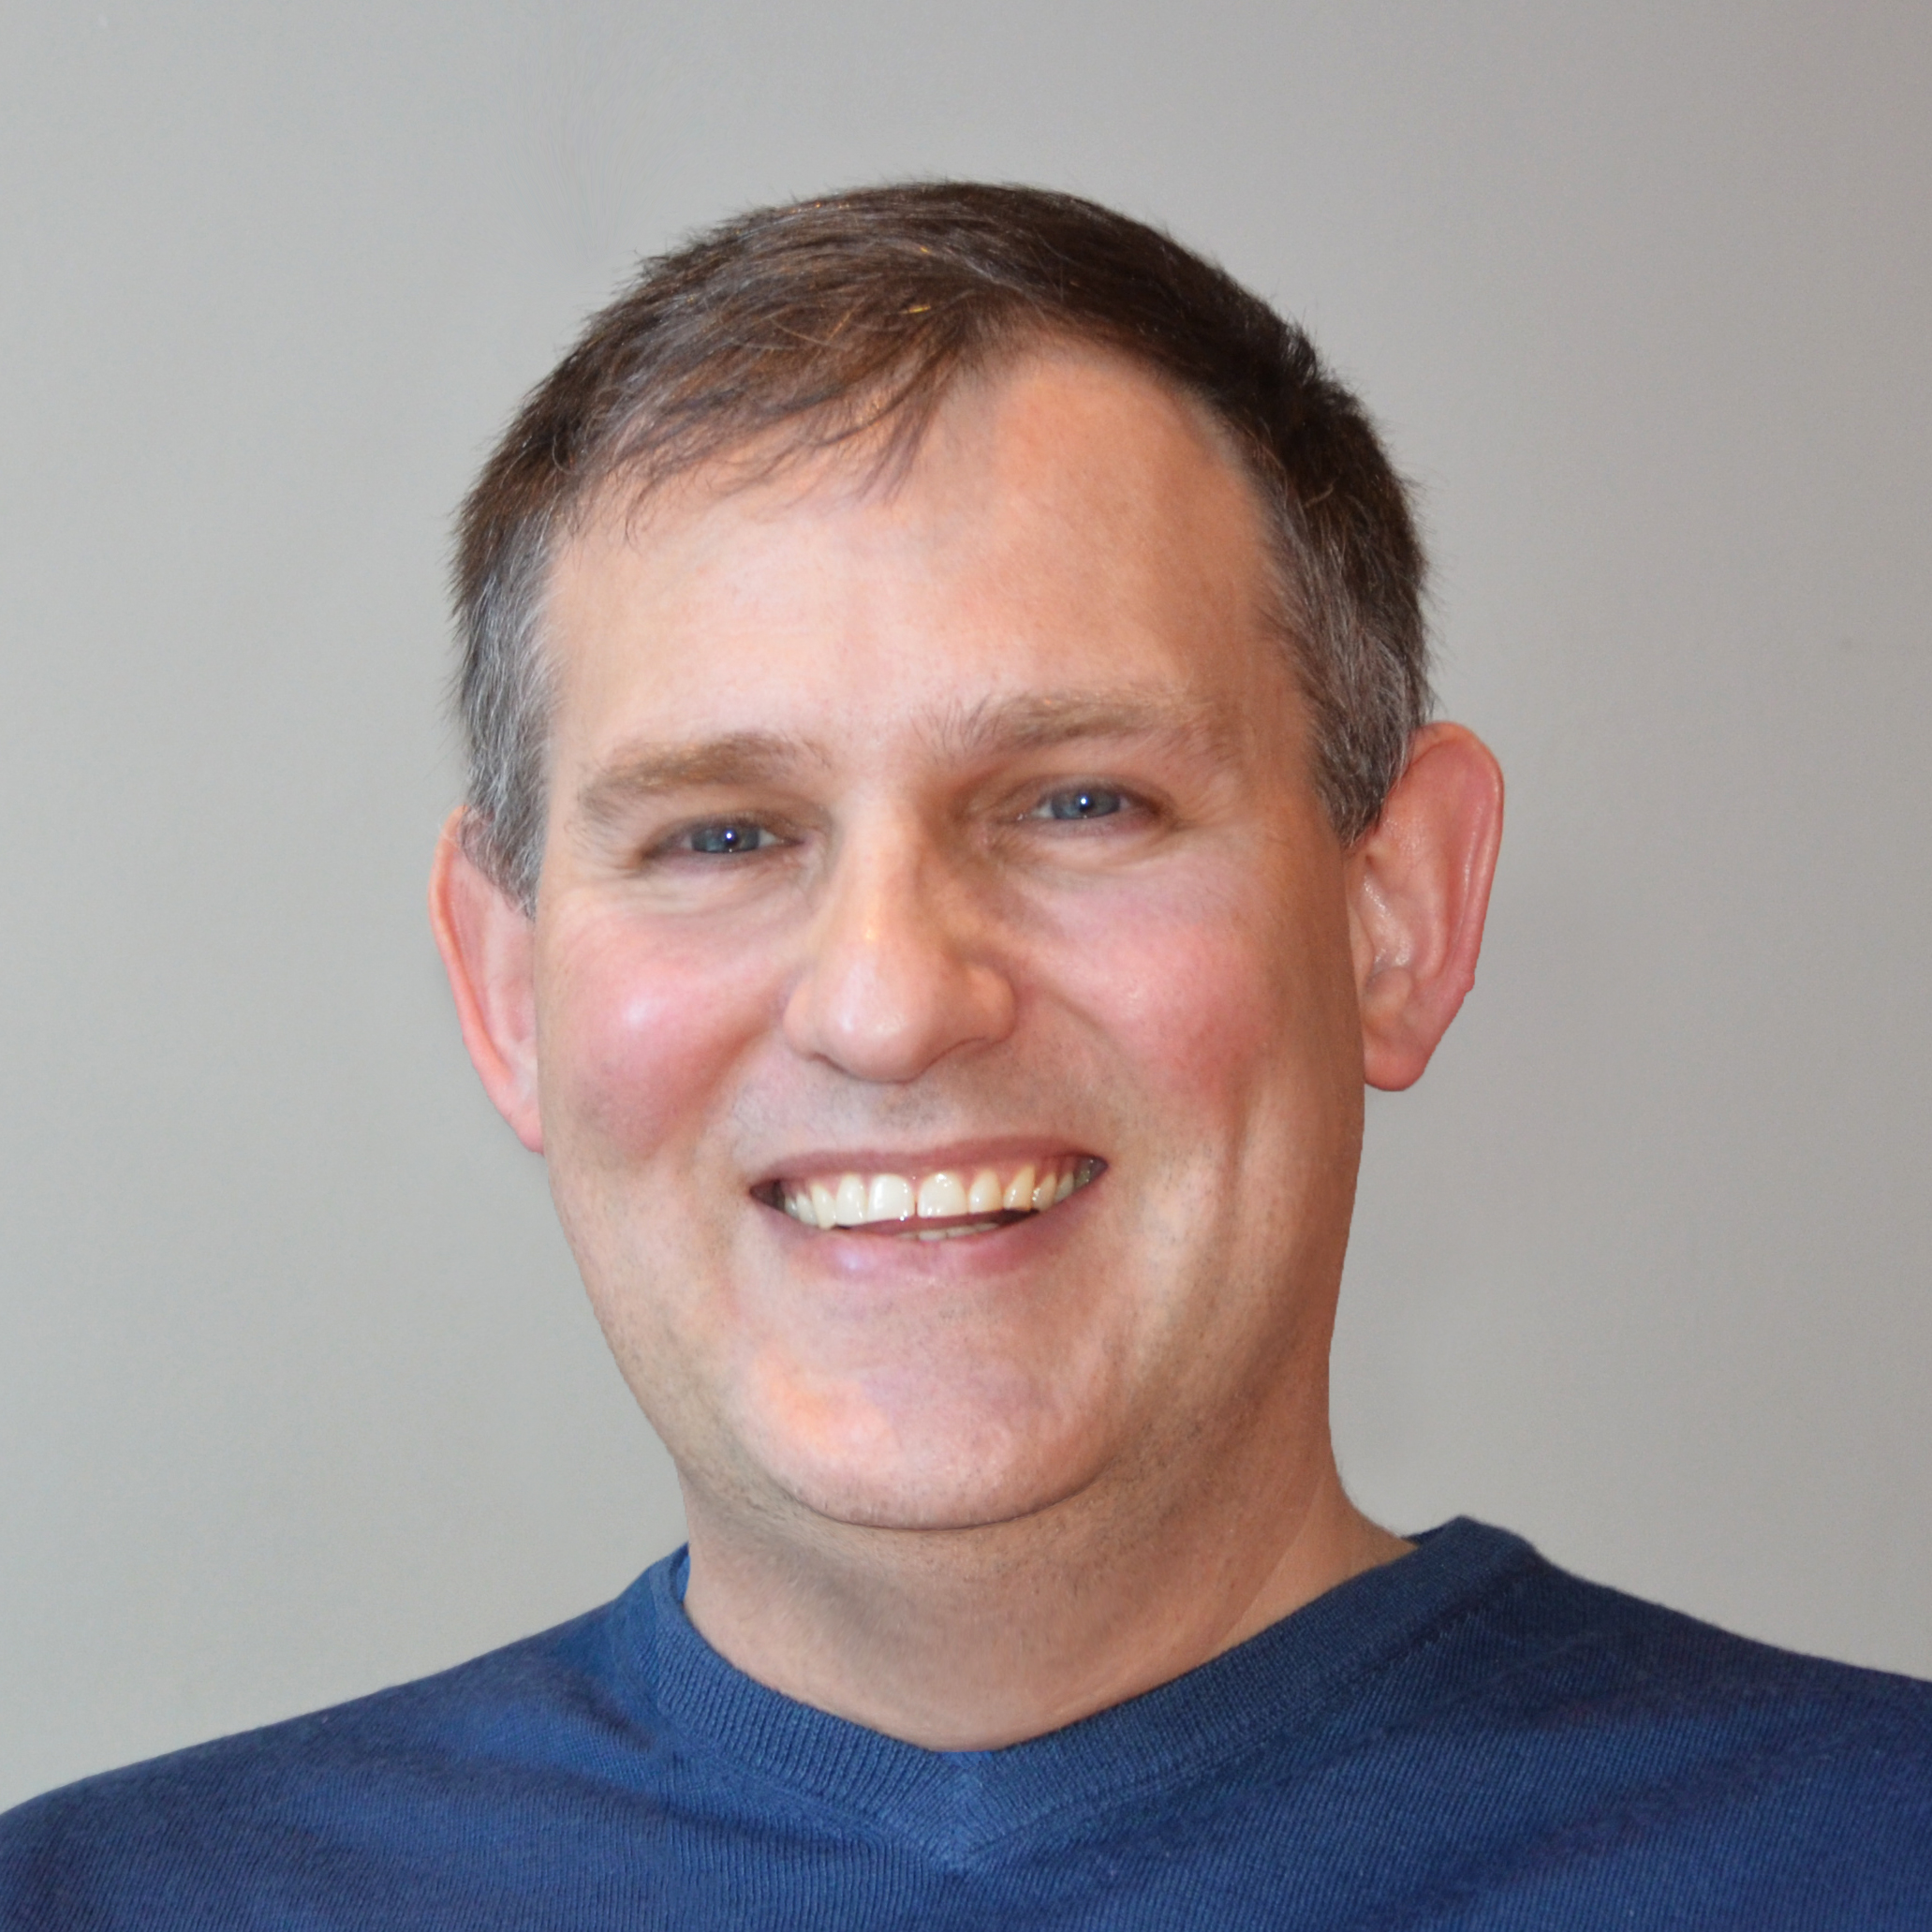 Profile photo of Shoptify owner David Wall.